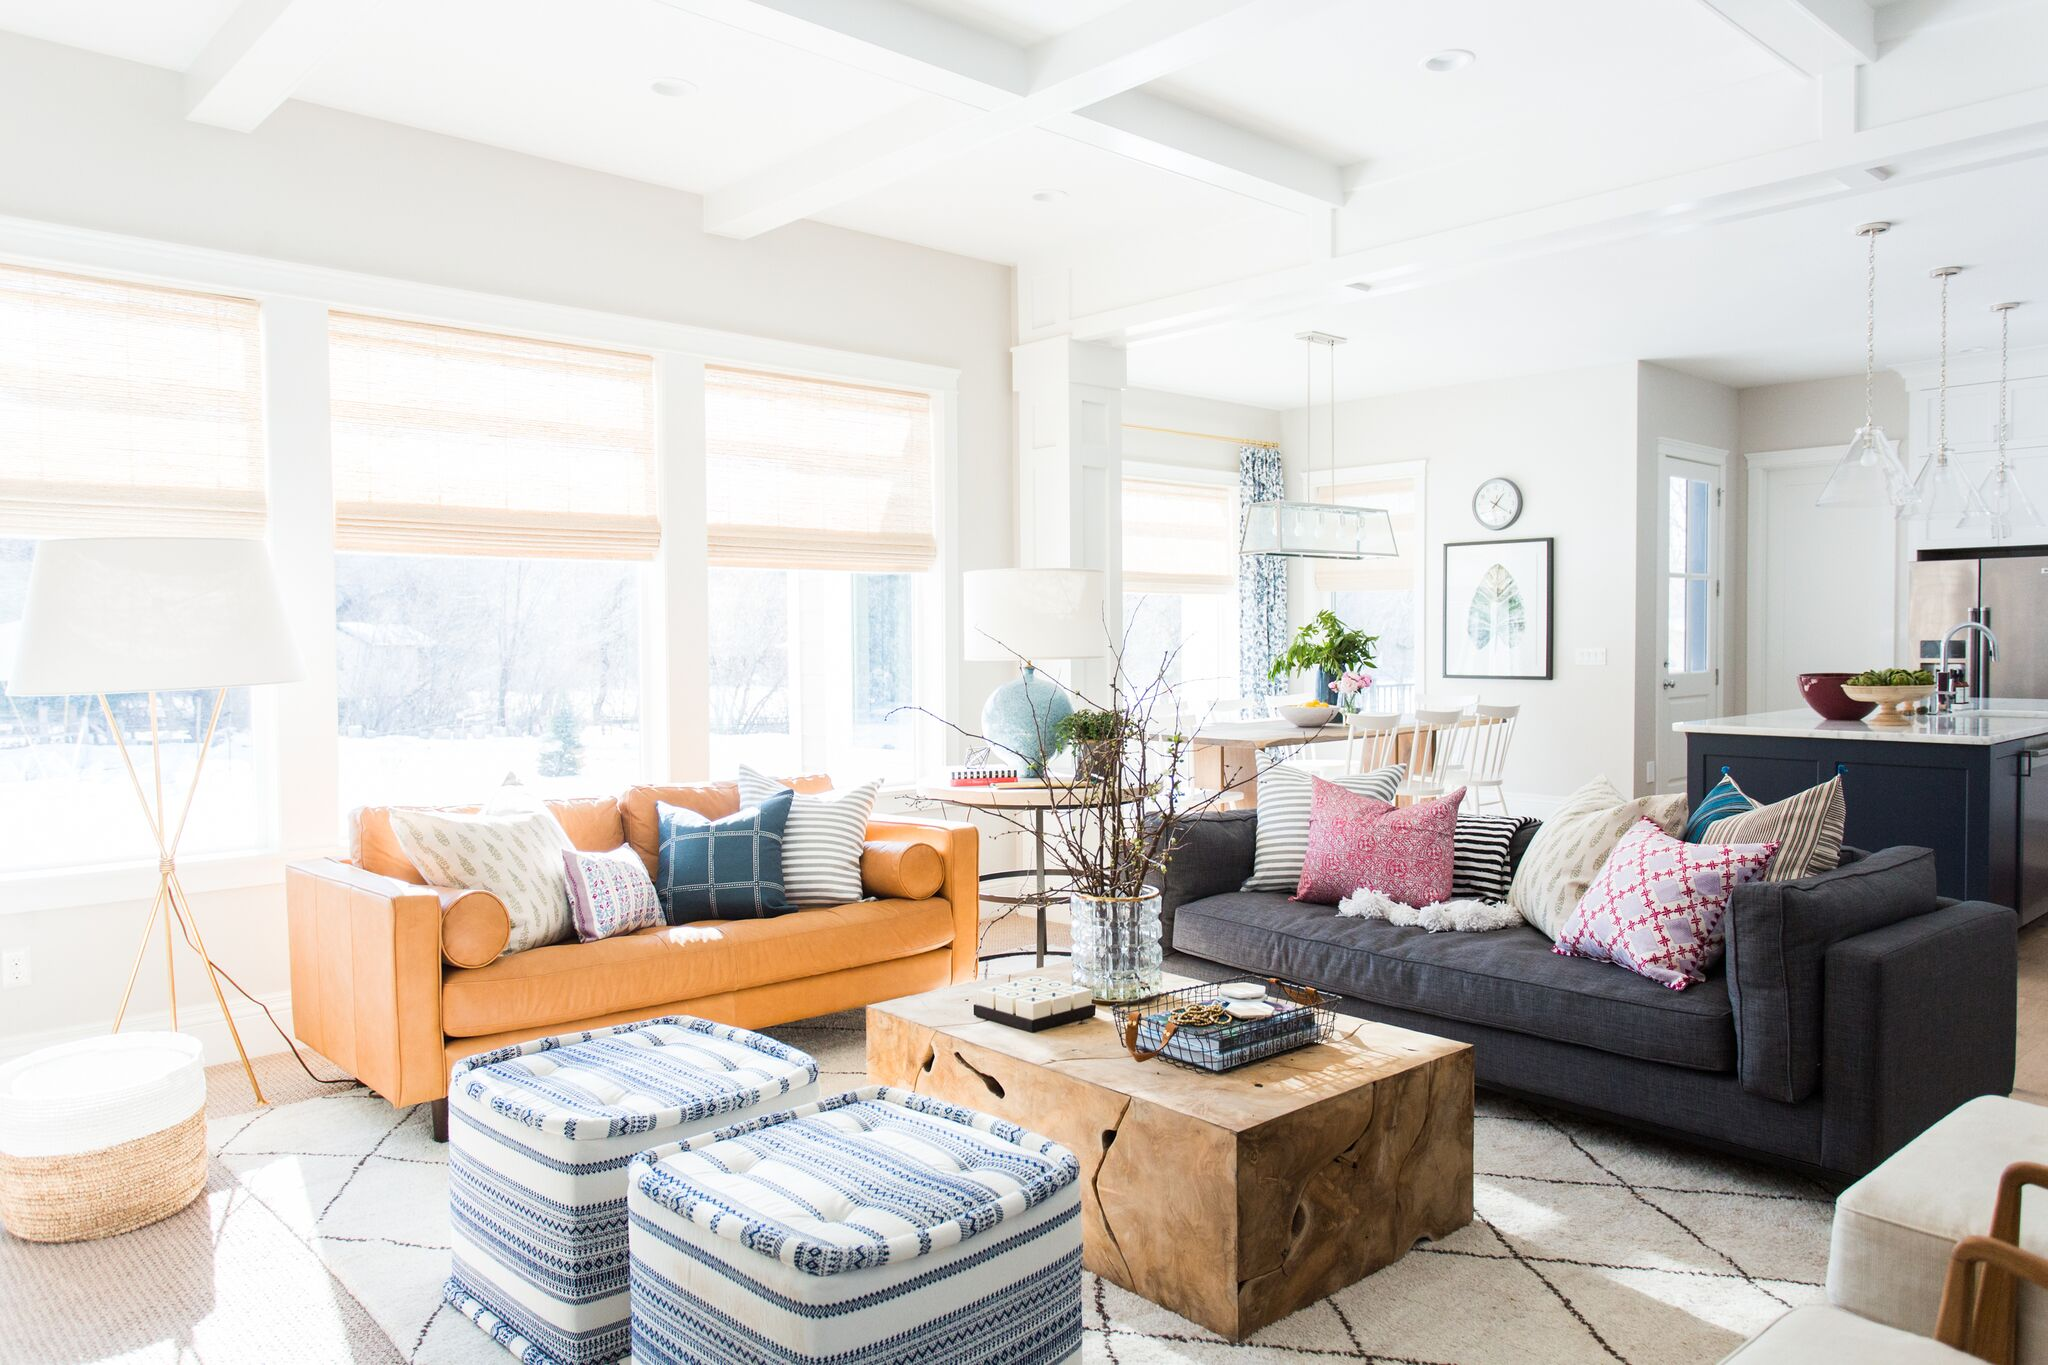 Orange and dark grey couch in living room